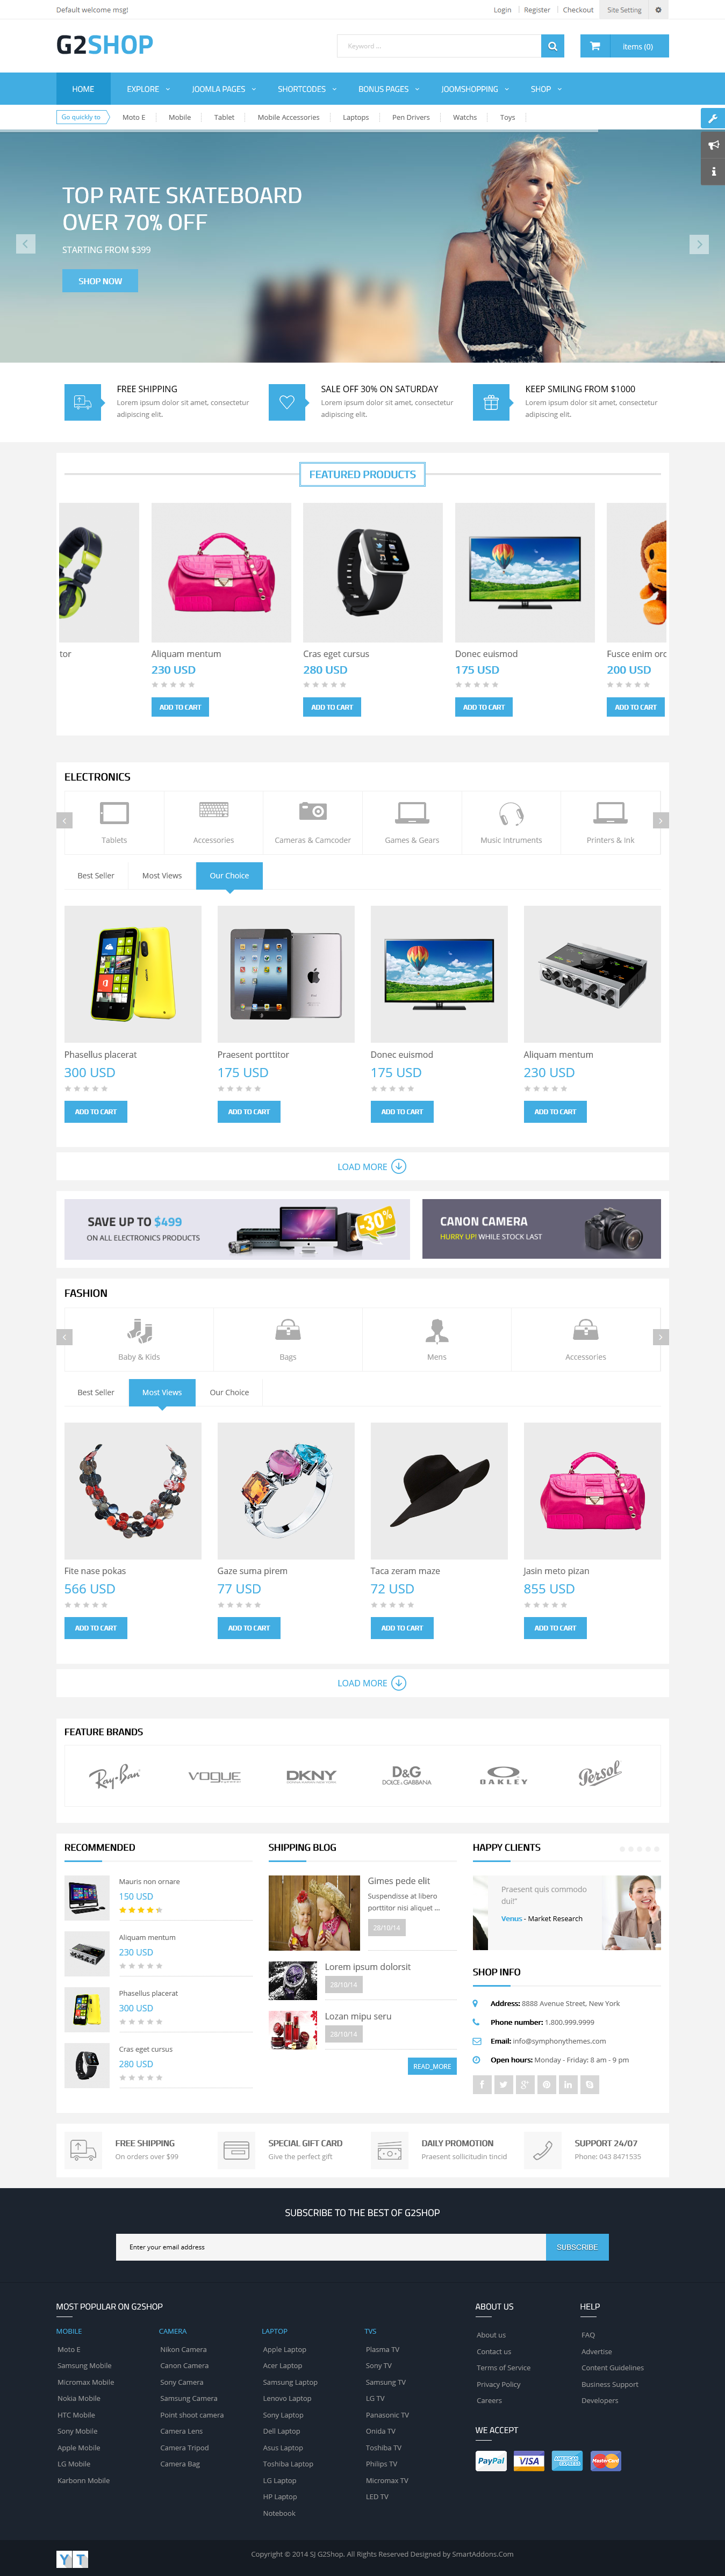 SJ G2Shop - Responsive Joomla eCommerce Template - 02_index.png